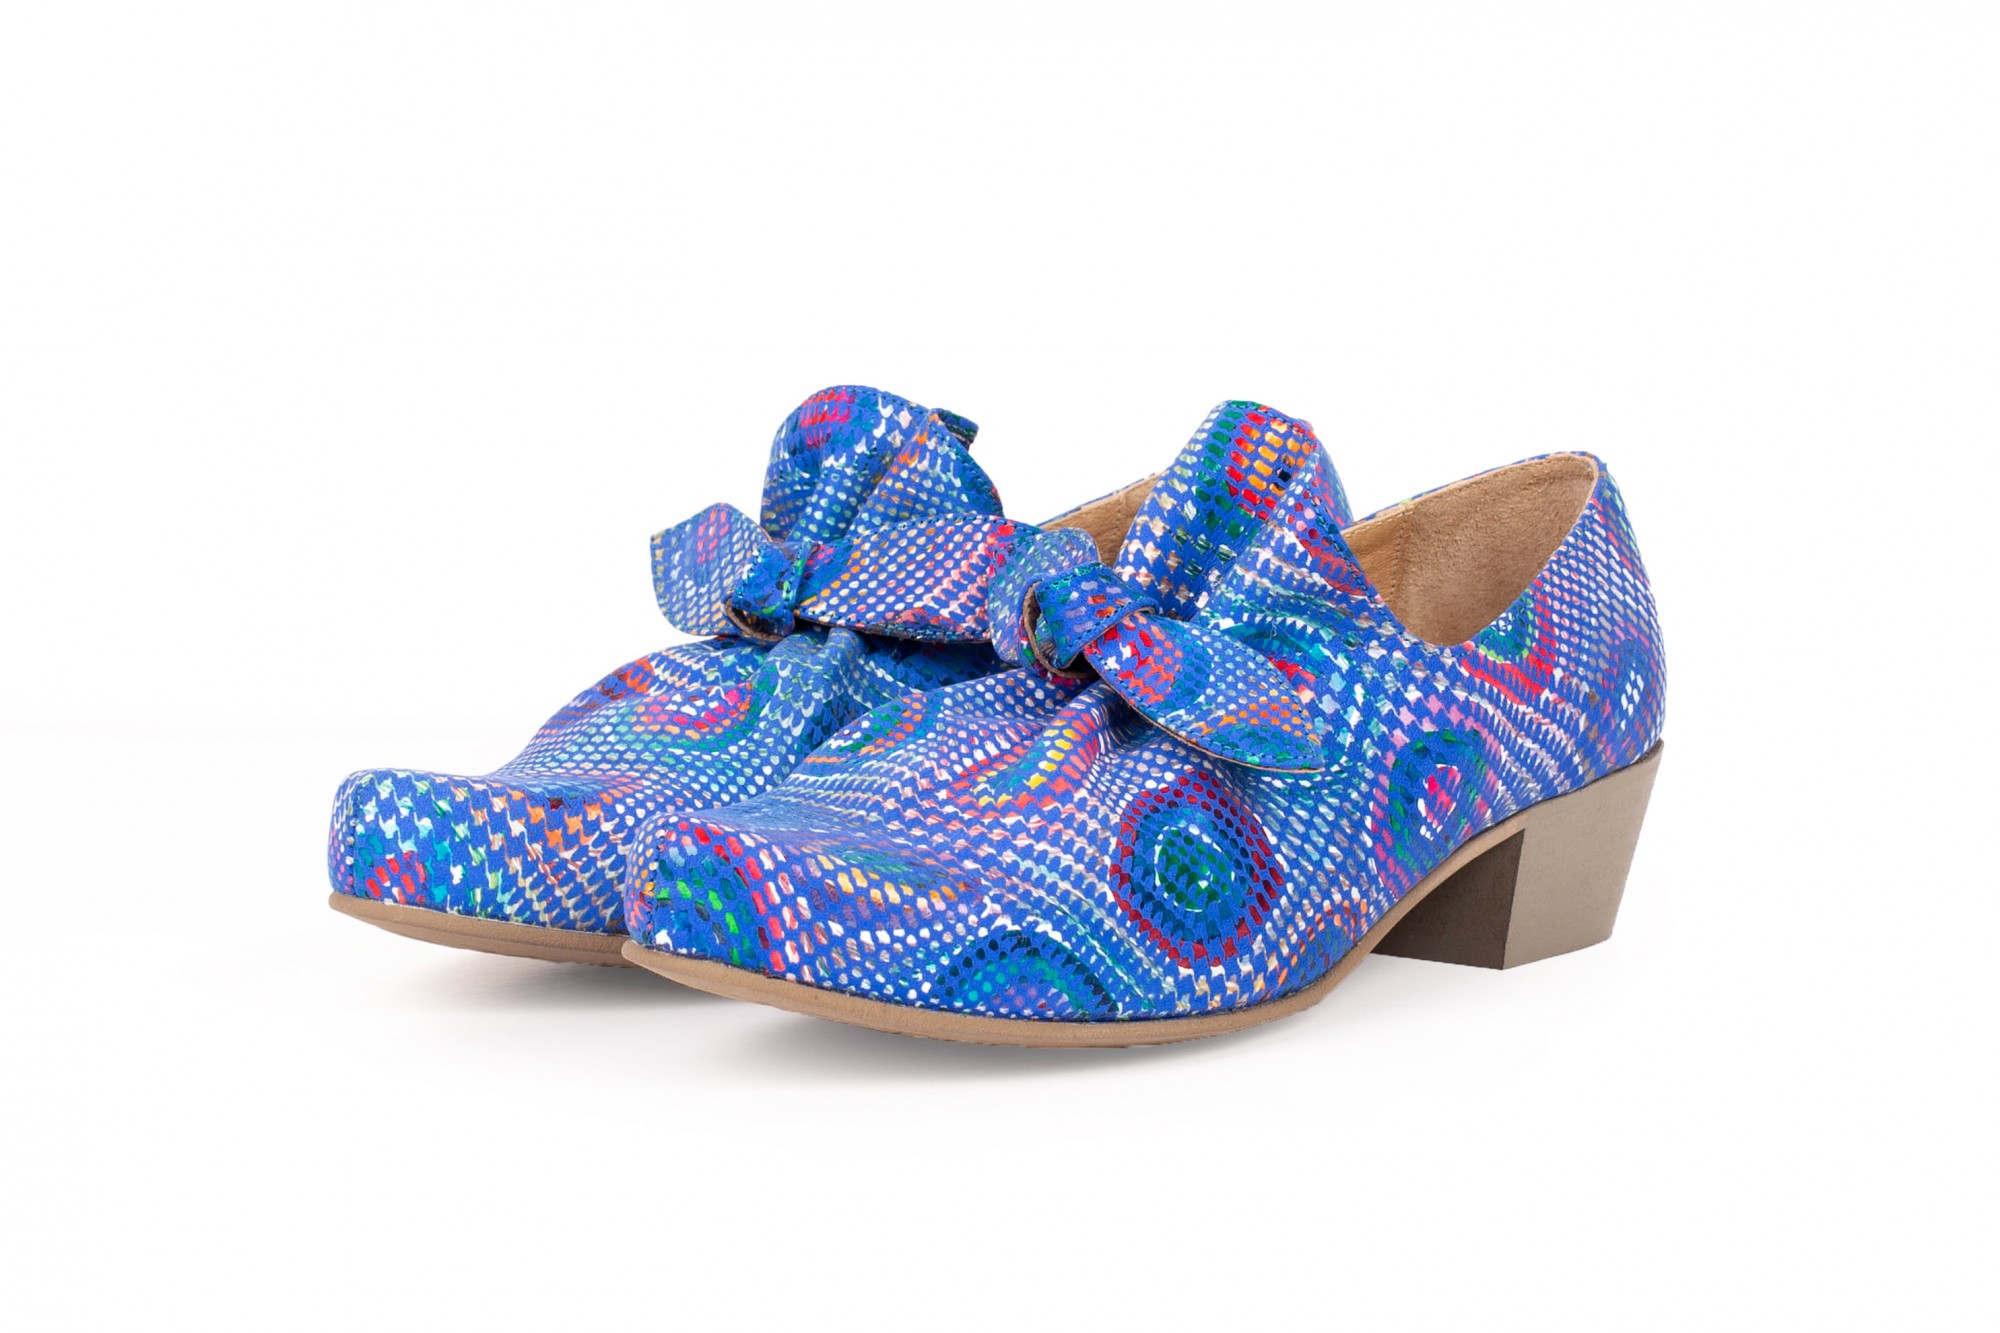 48136423139 Low heel bow shoes blue